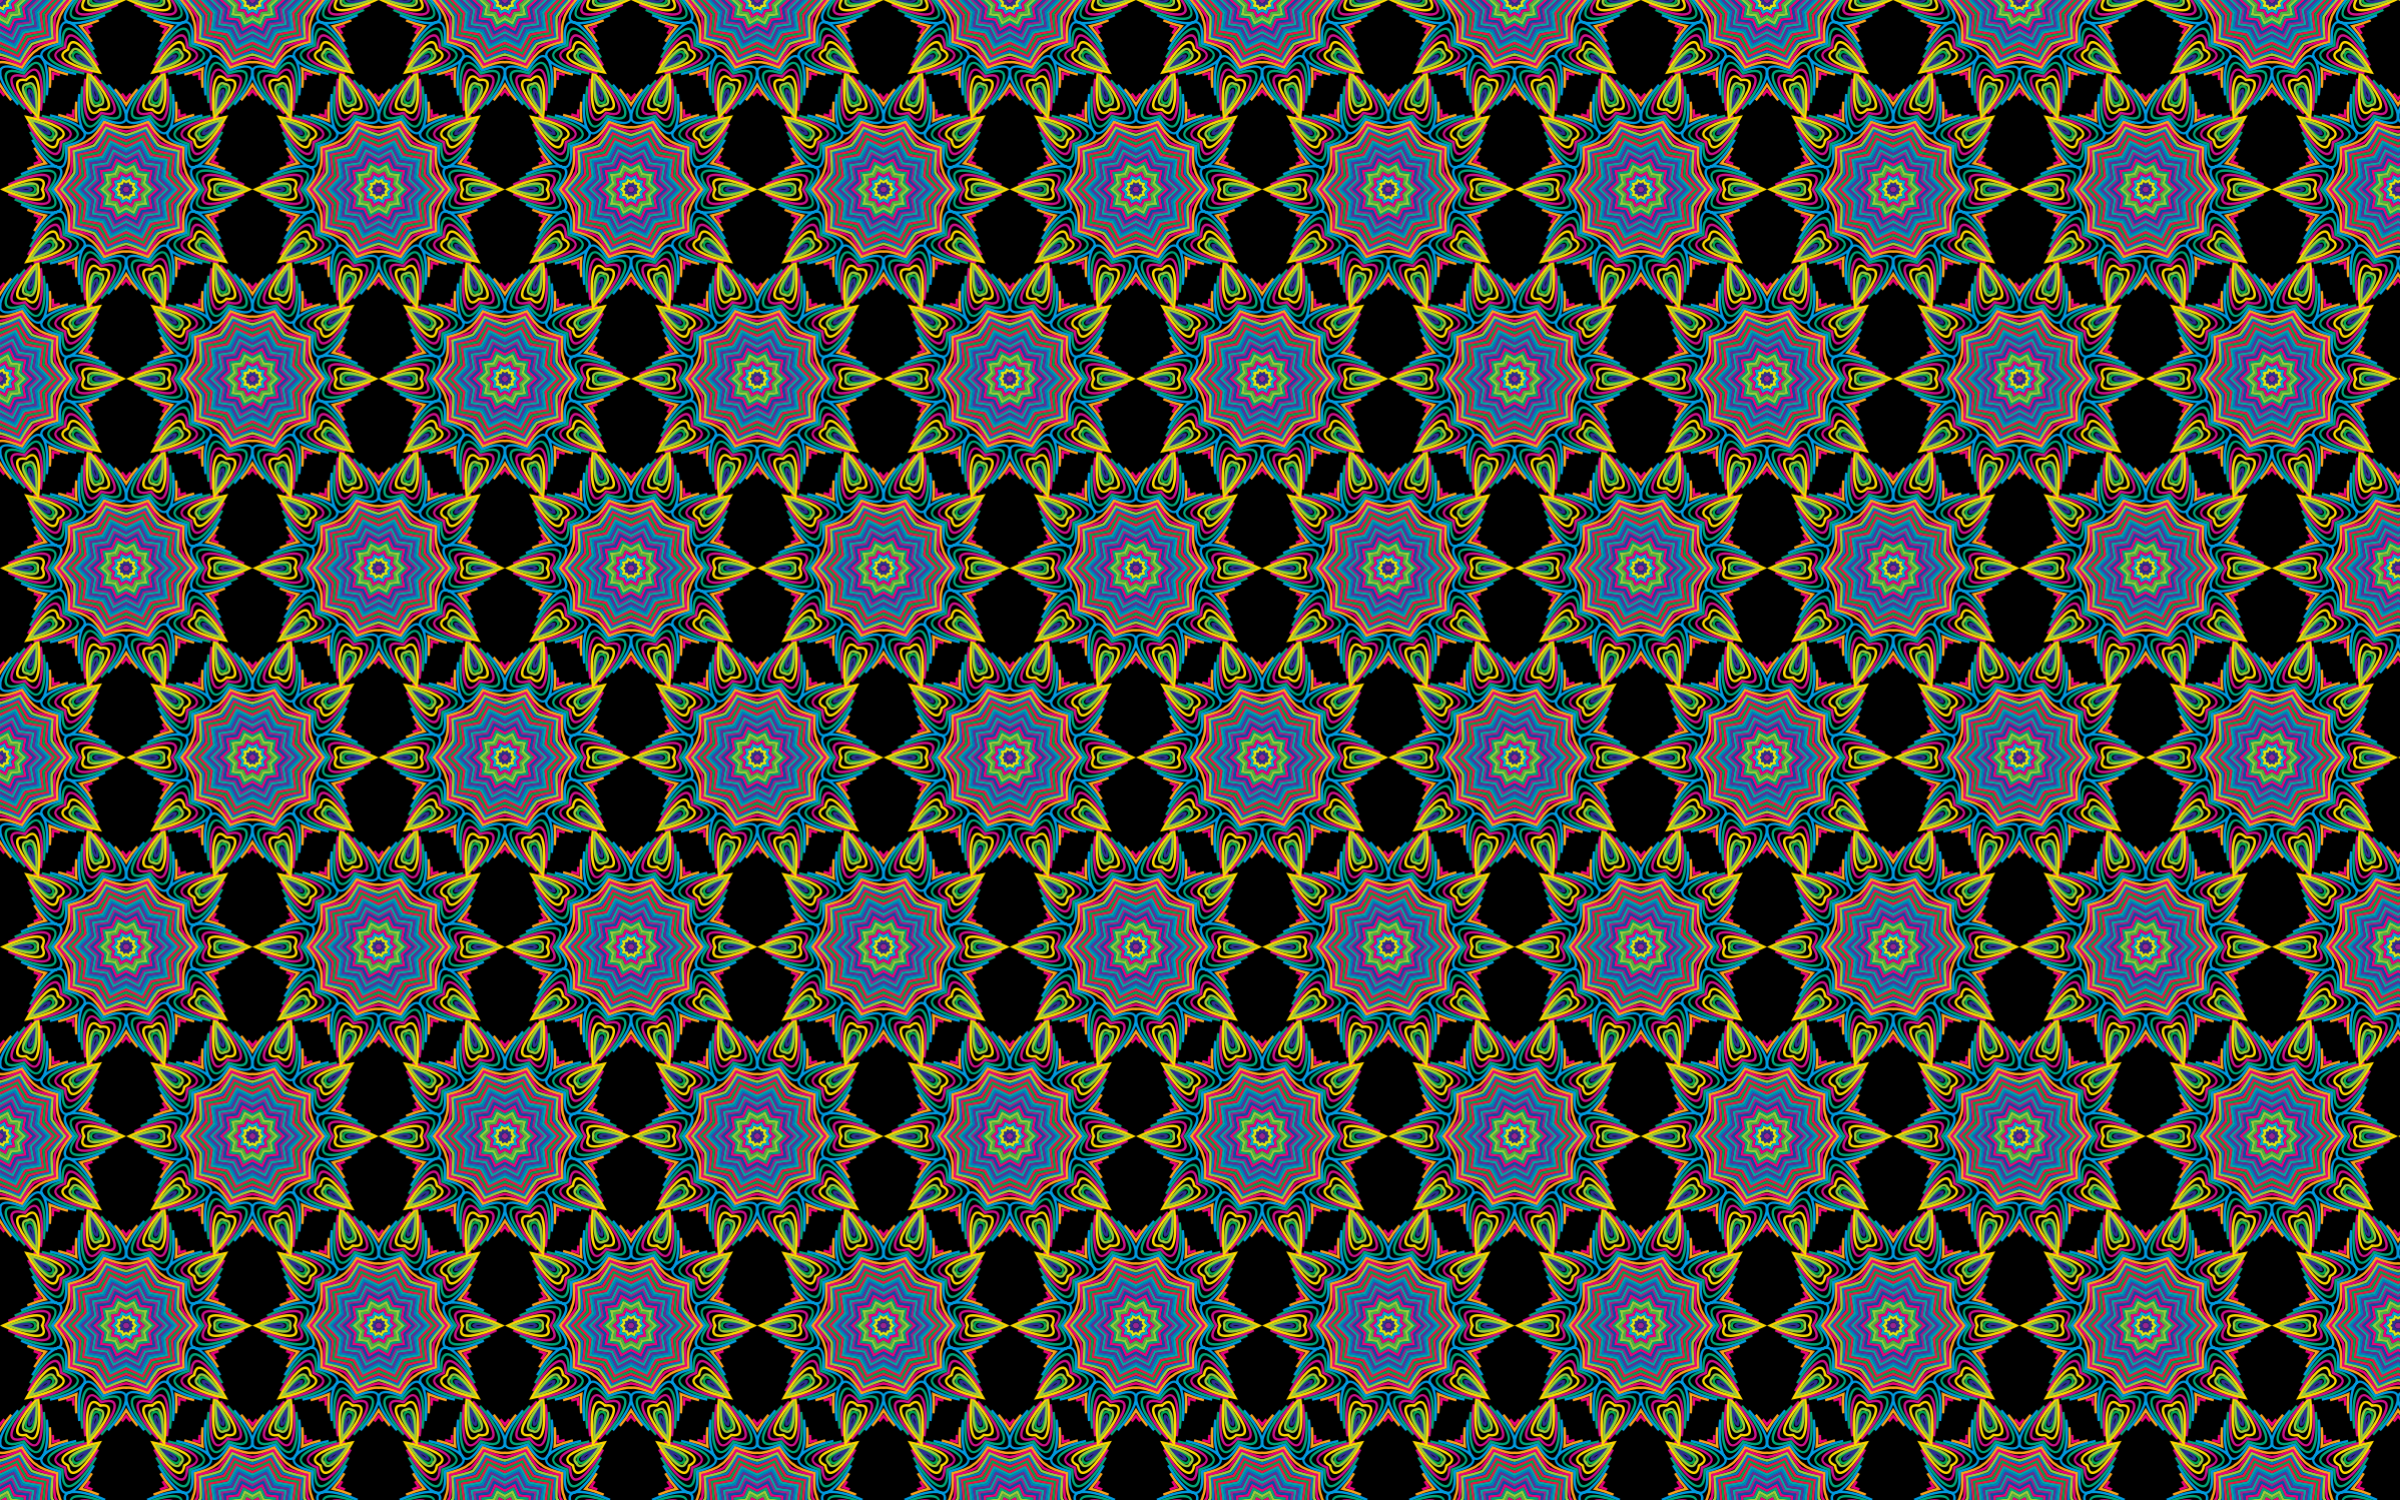 Seamless Prismatic Waves Pattern With Background by GDJ